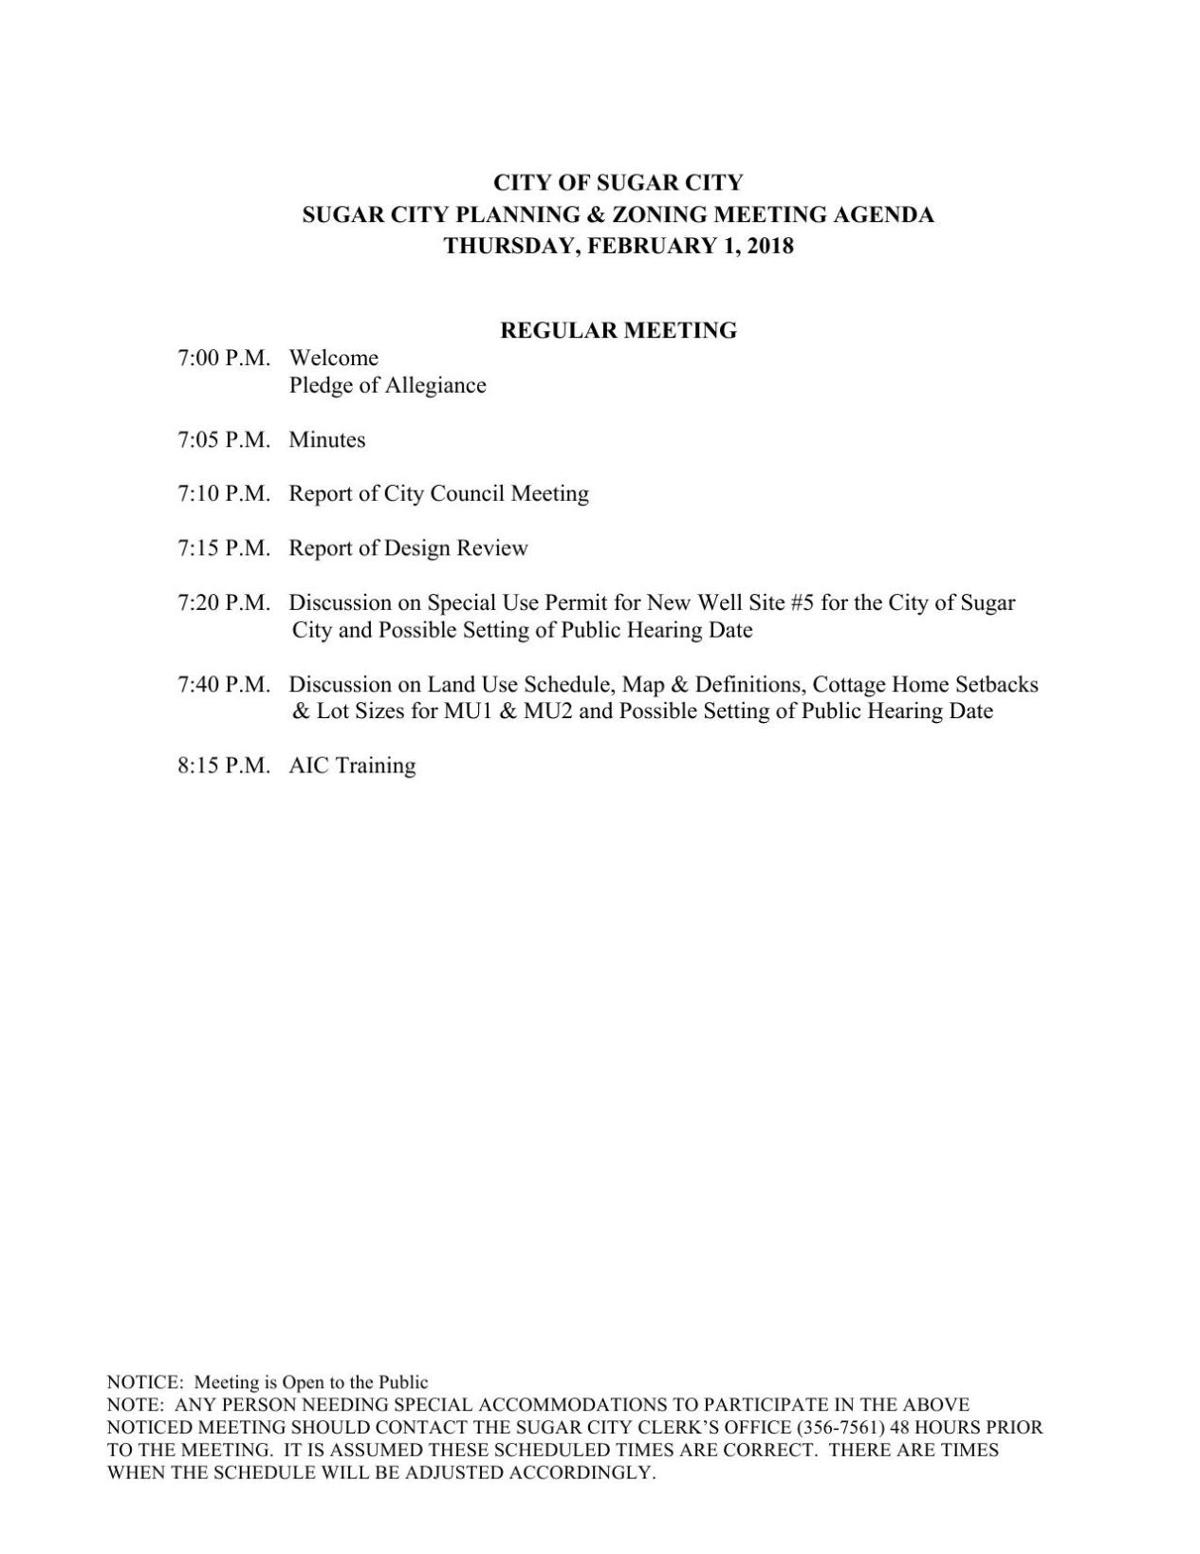 Sugar Planning and Zoning meeting, Feb. 1, 2018